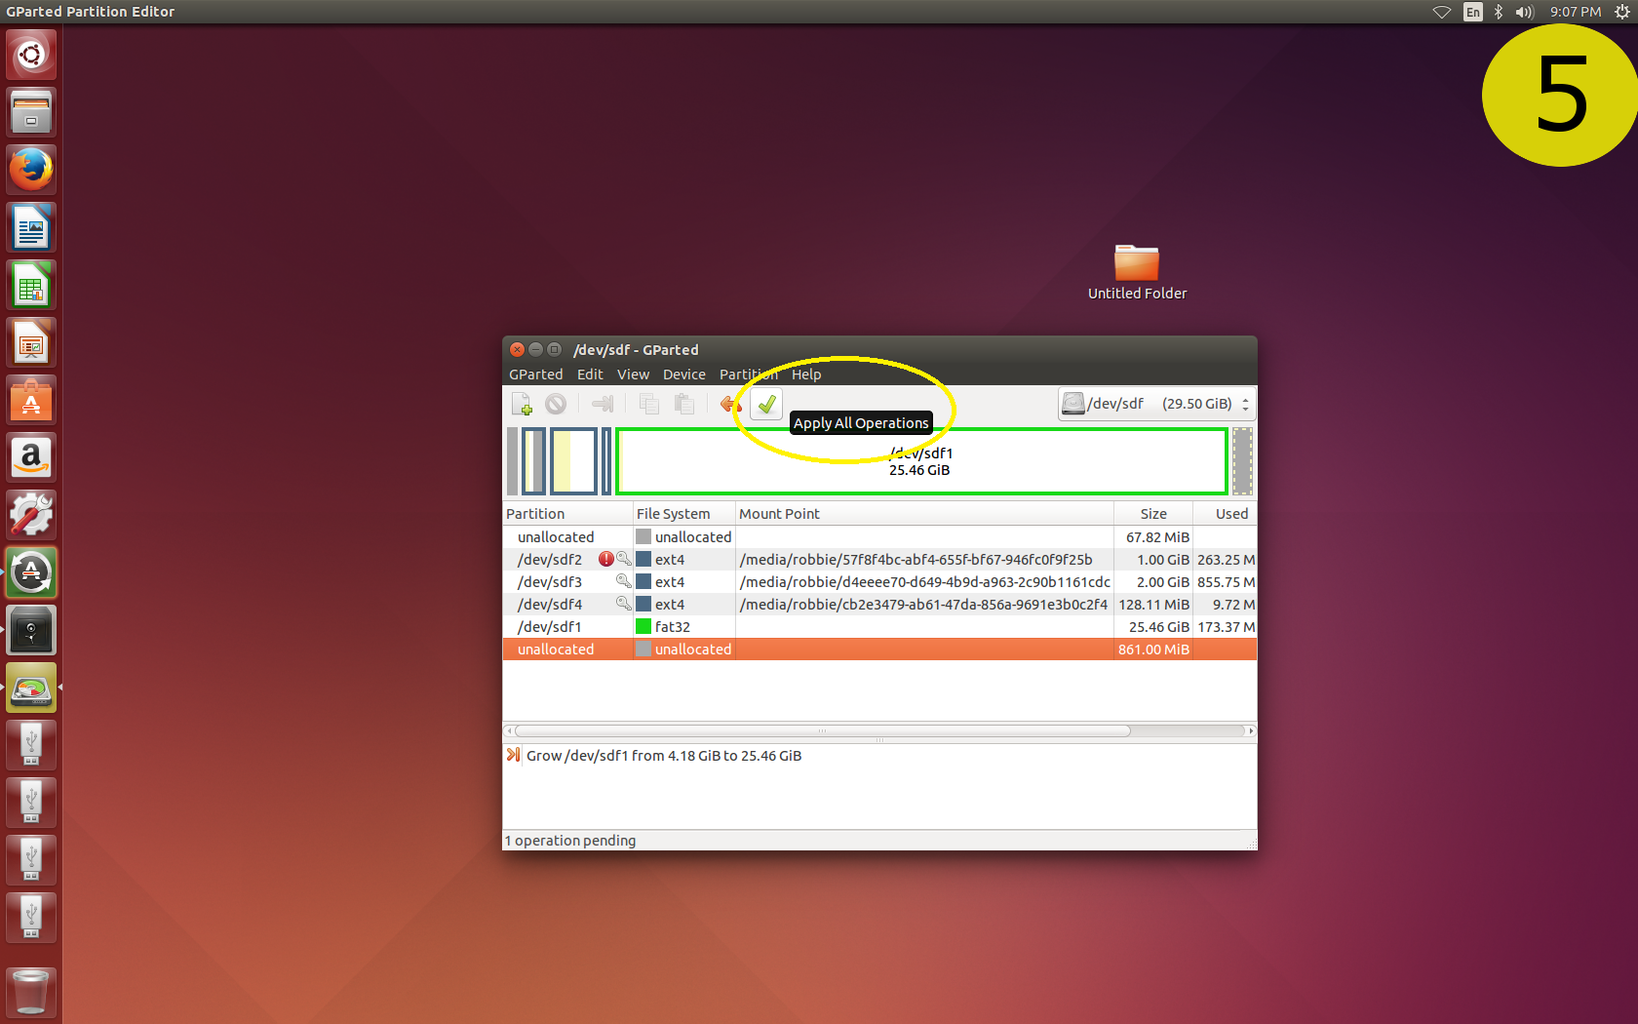 Setting Up the Operating Systems (Maximizing the Amount of Available Internal Storage)